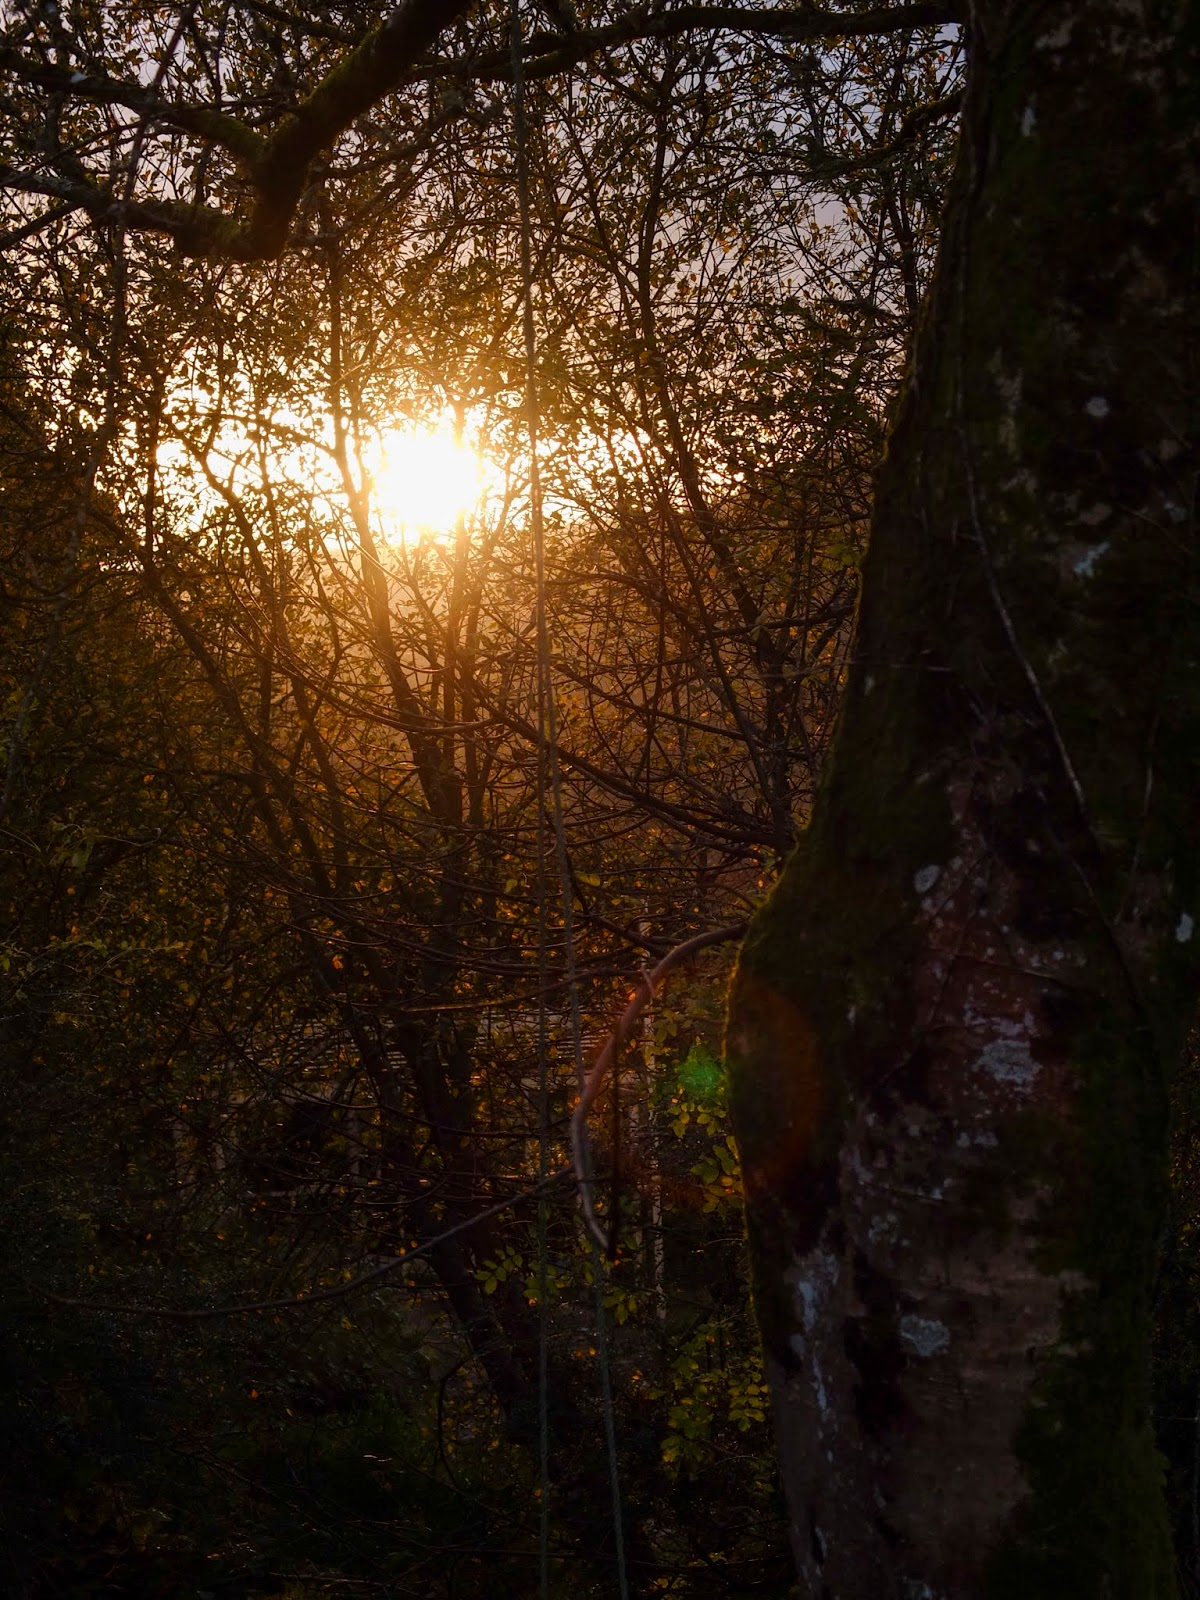 Sun shining behind bare tree branches.